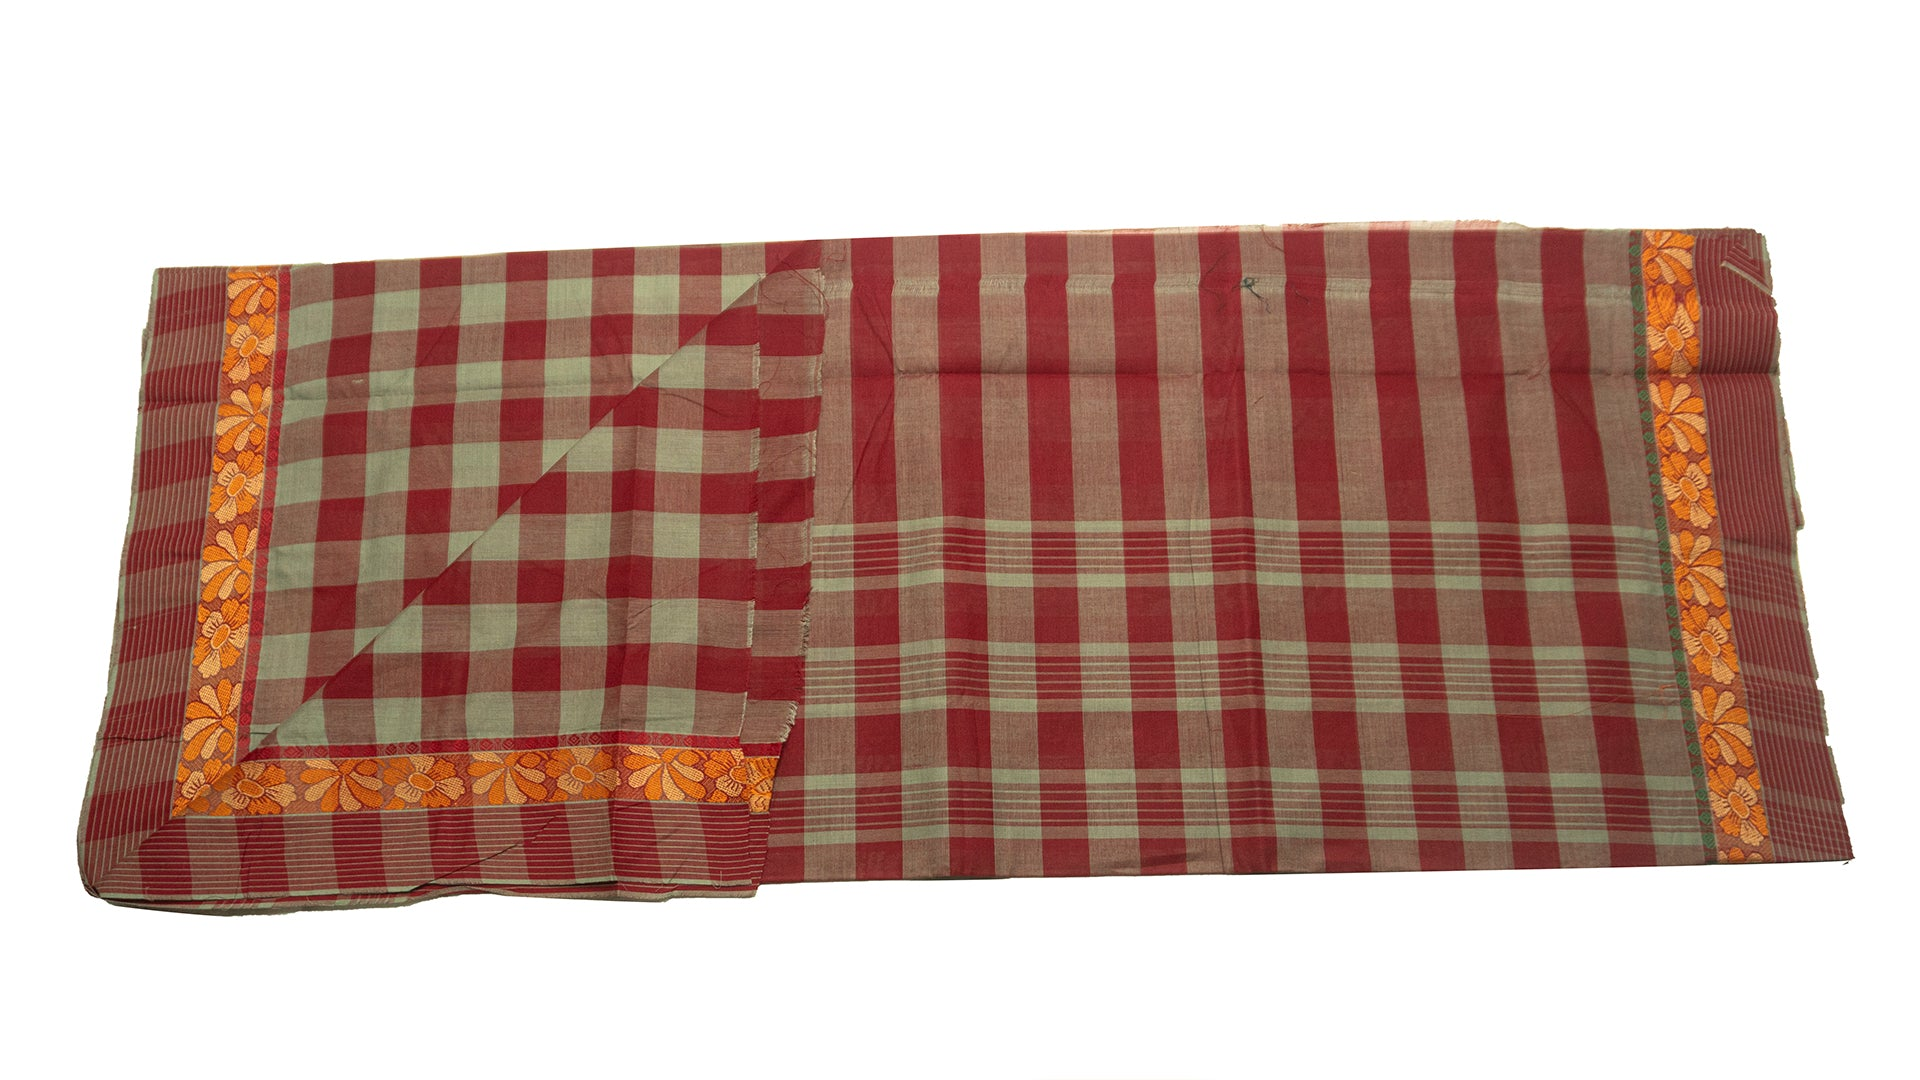 39459  Pure Cotton Saree  thread border multicolour checks Grey with Maroon